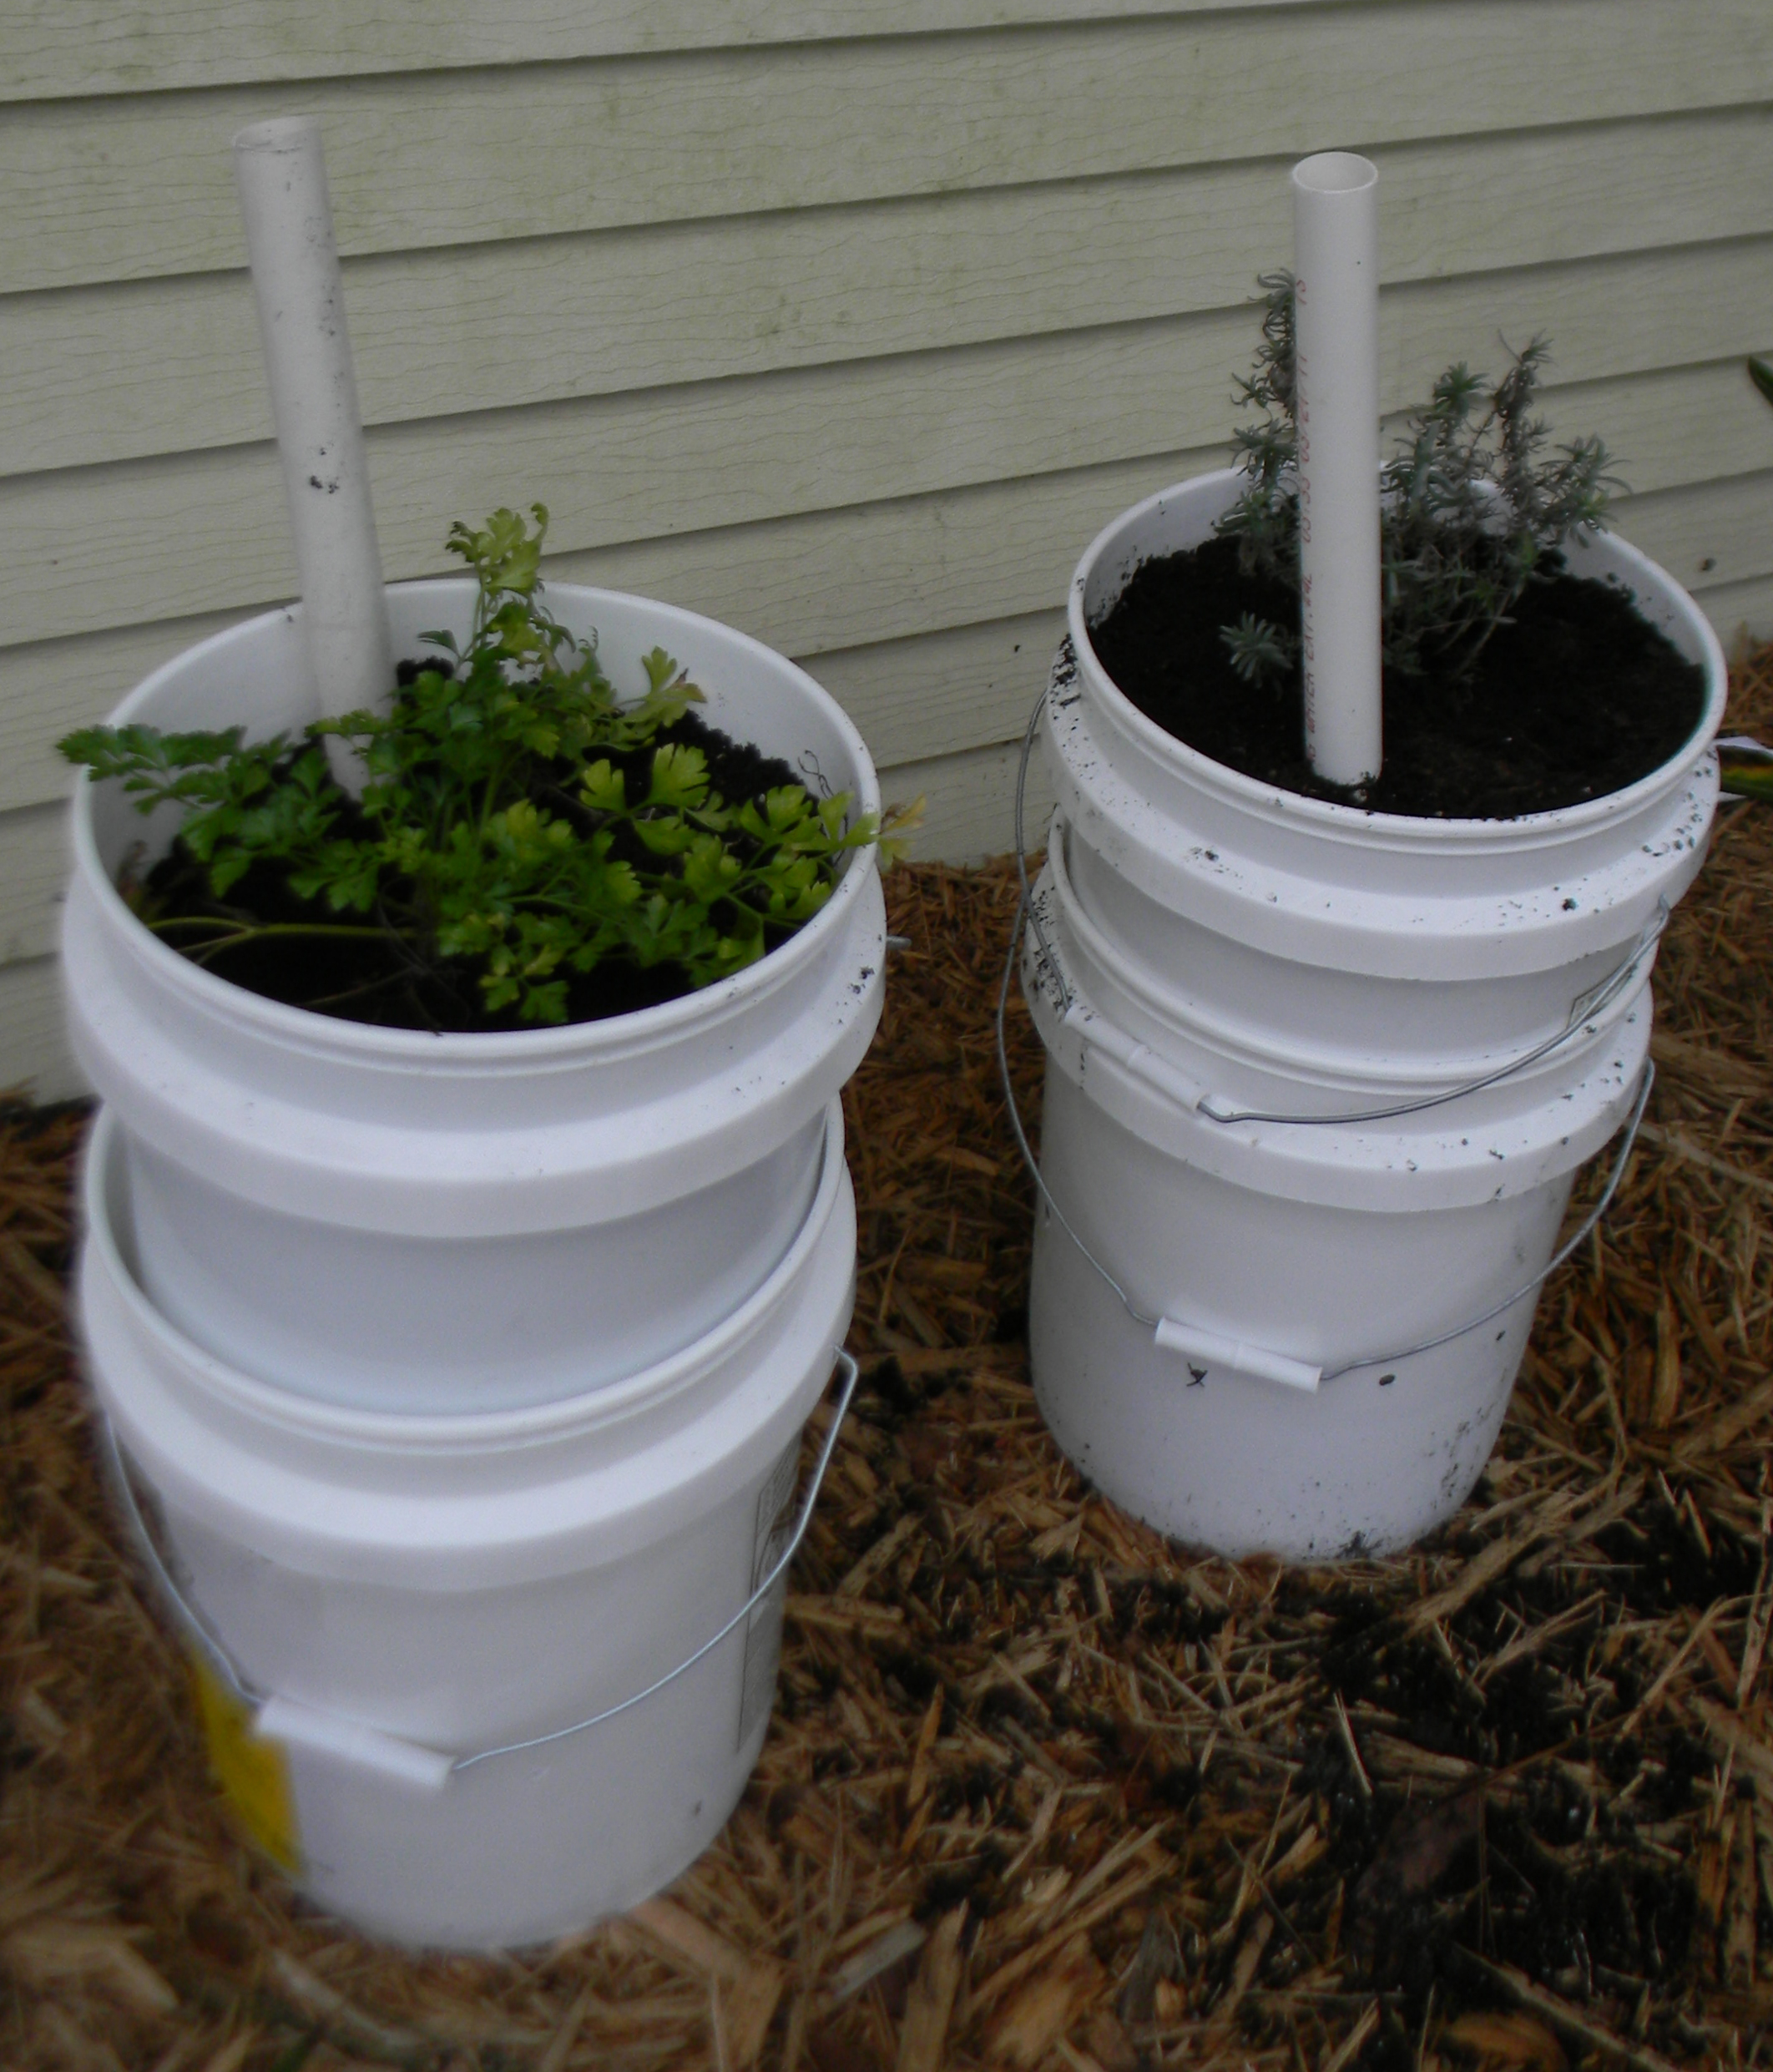 self watering garden containers 5 gallon buckets upated